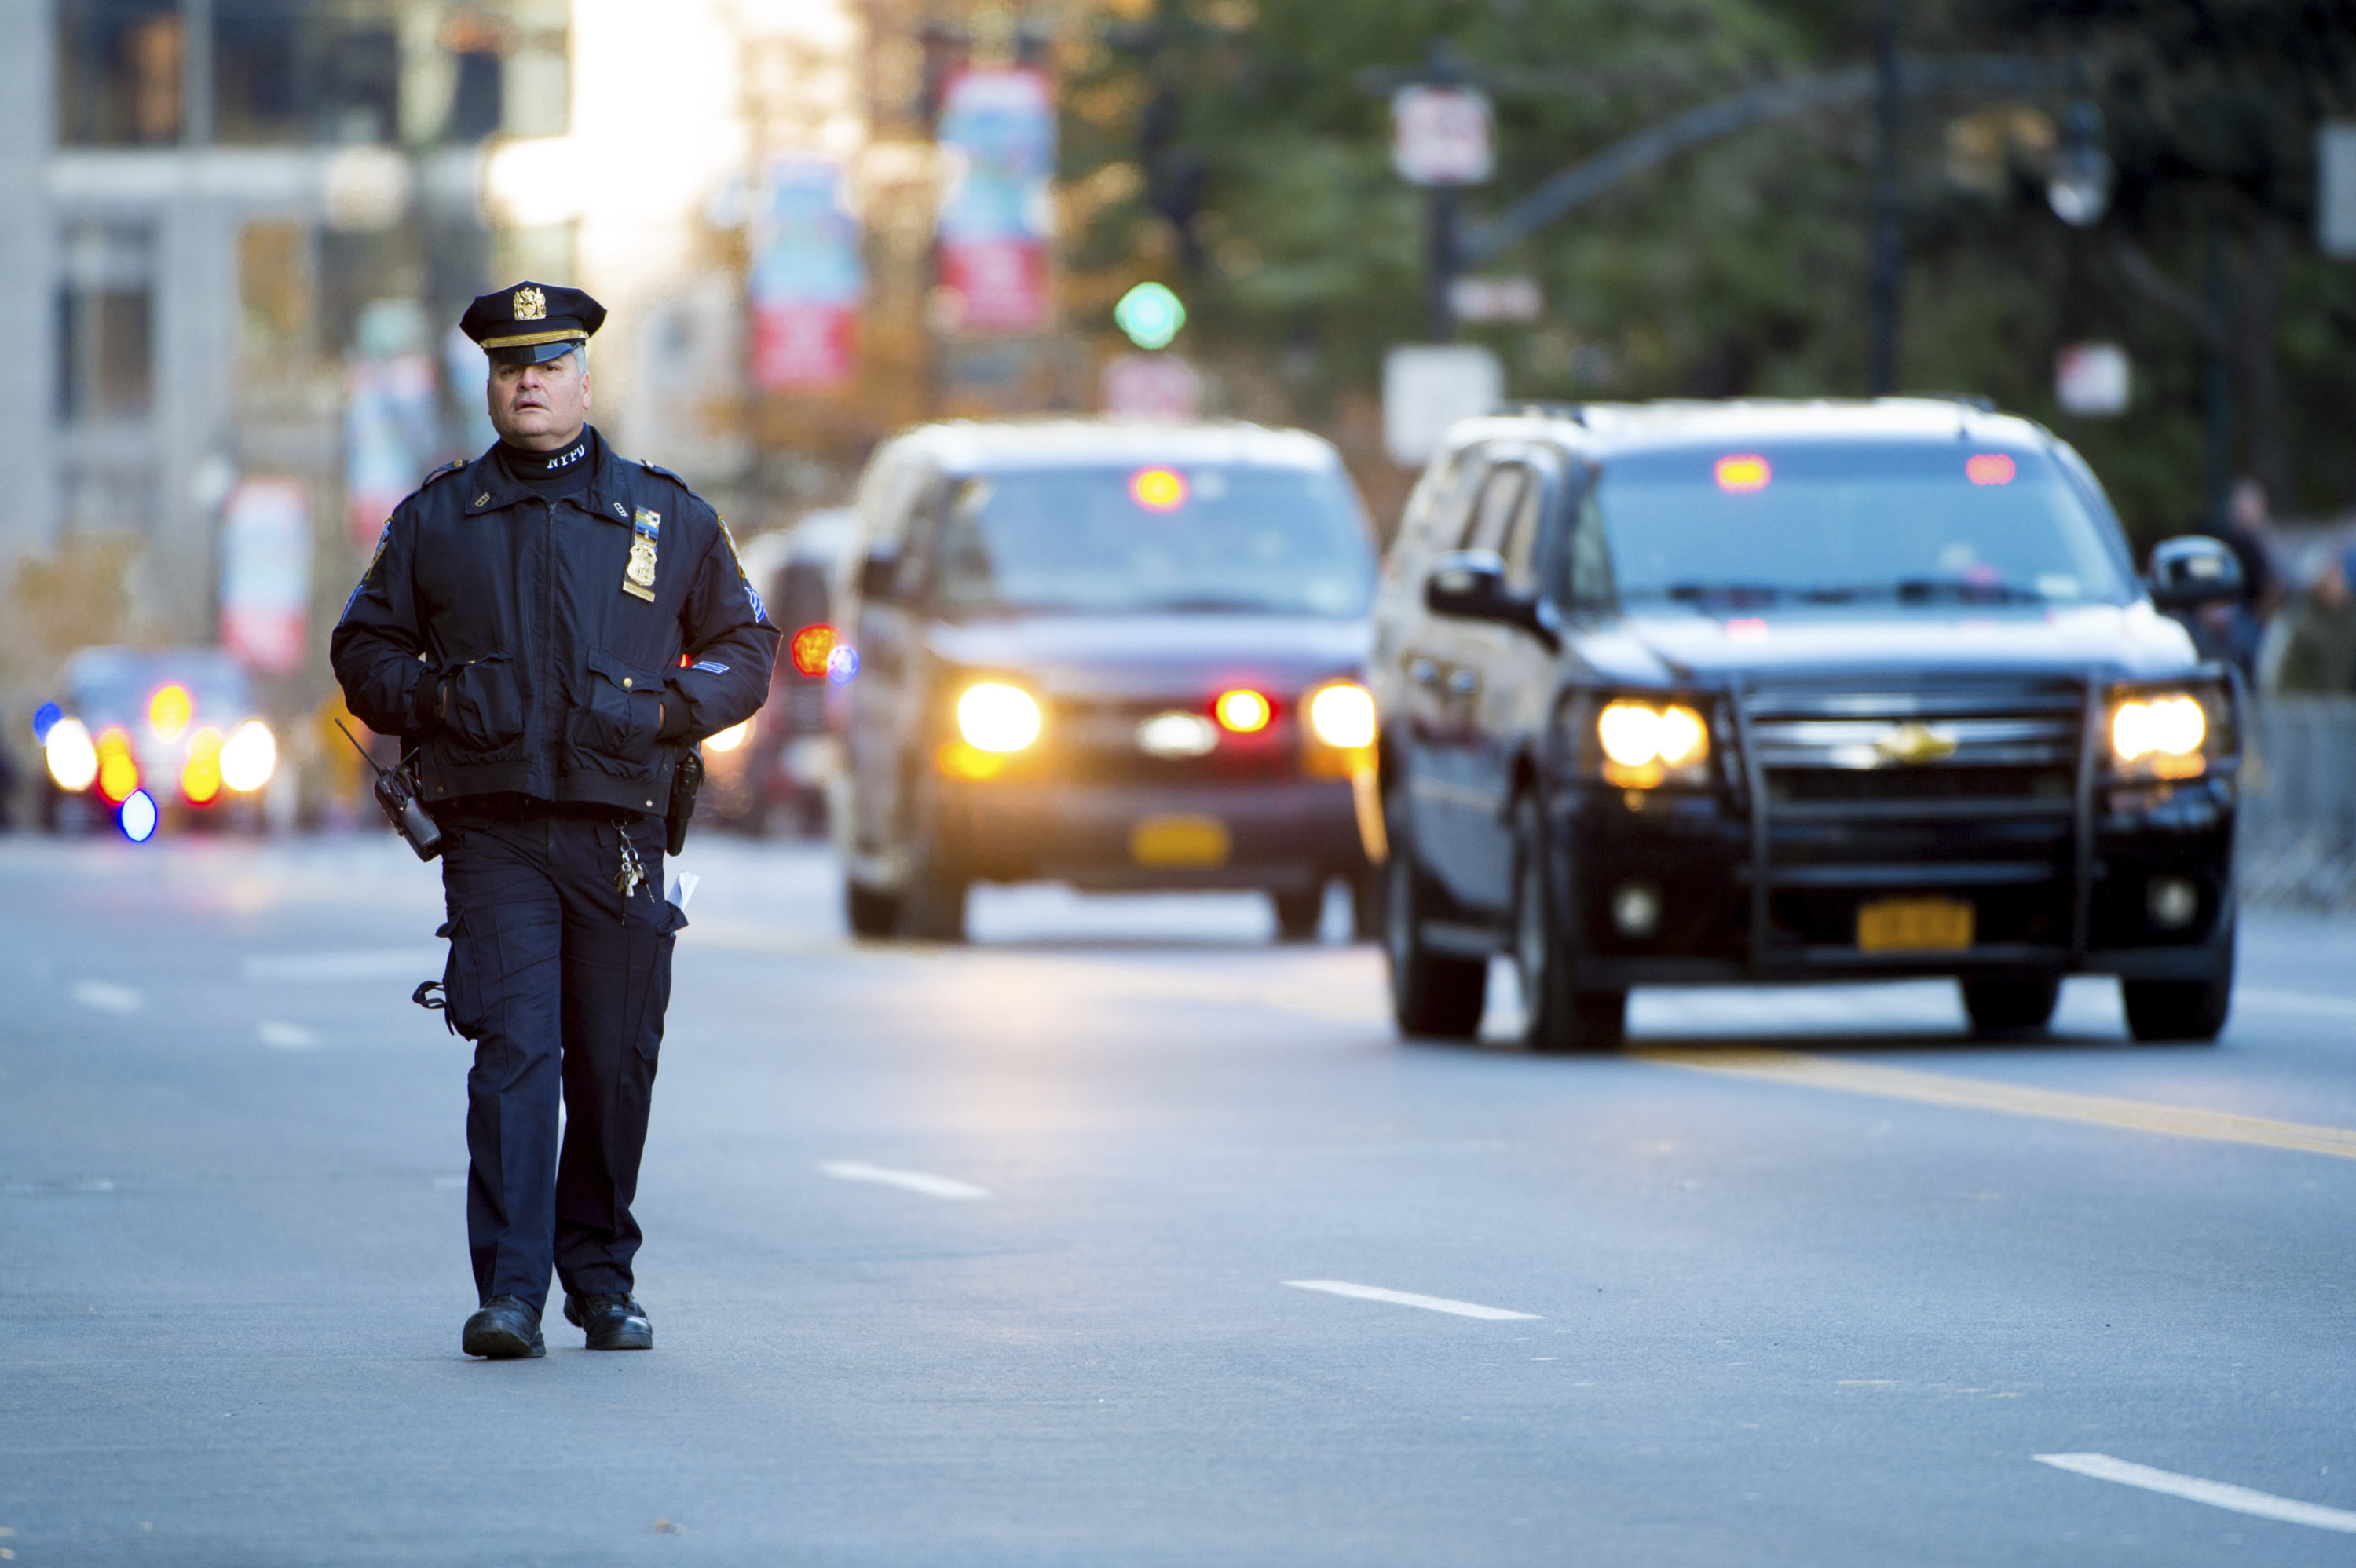 Complaints against NYPD spiked in 2019